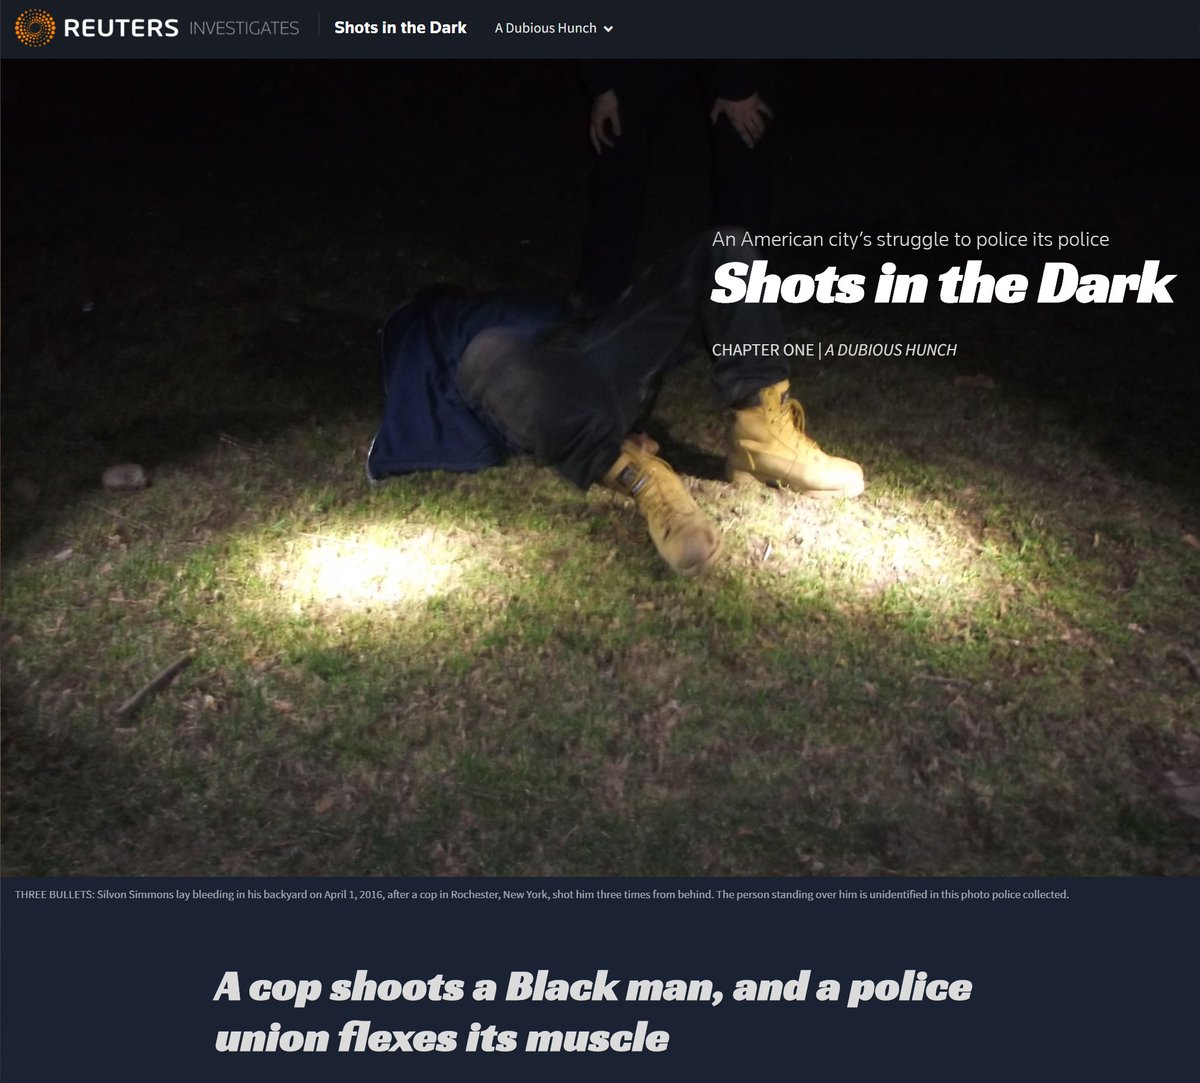 Three bullets, a mystery gun, a Black man shot and a police union – a riveting @Reuters narrative that examines powerful forces and blockades of justice reform  @lisagirion @readelev